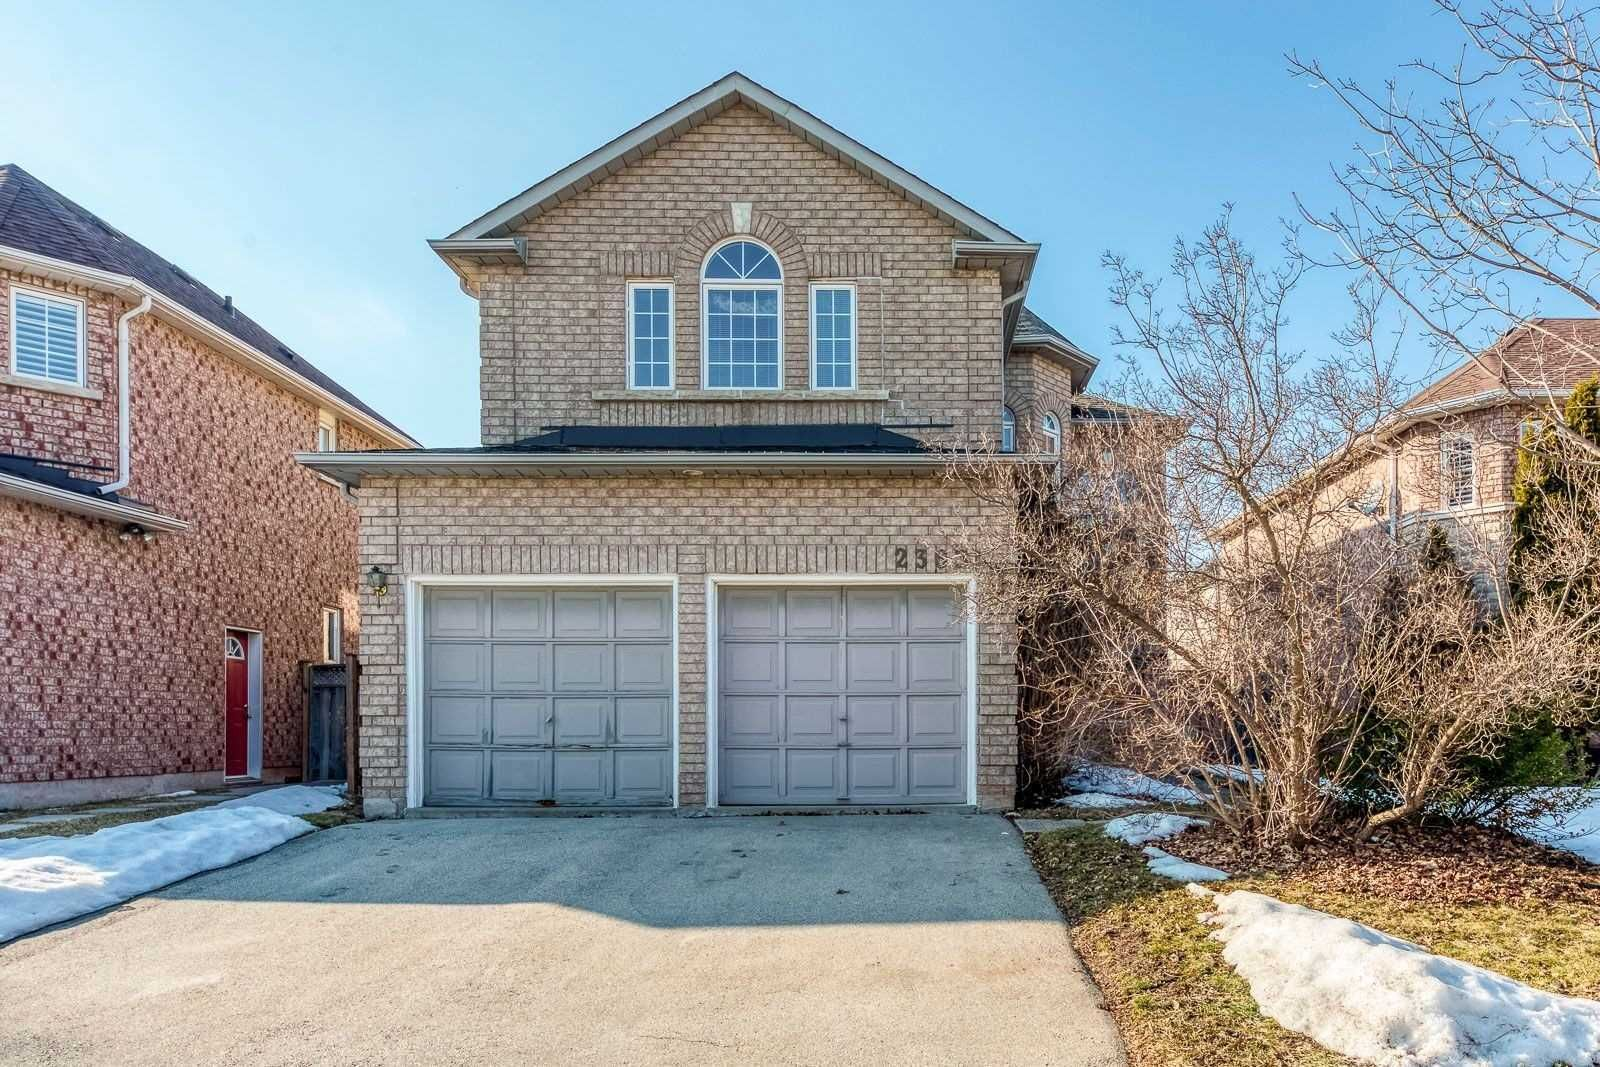 Main Photo: 2363 East Gate Crescent in Oakville: River Oaks House (2-Storey) for sale : MLS®# W5136663